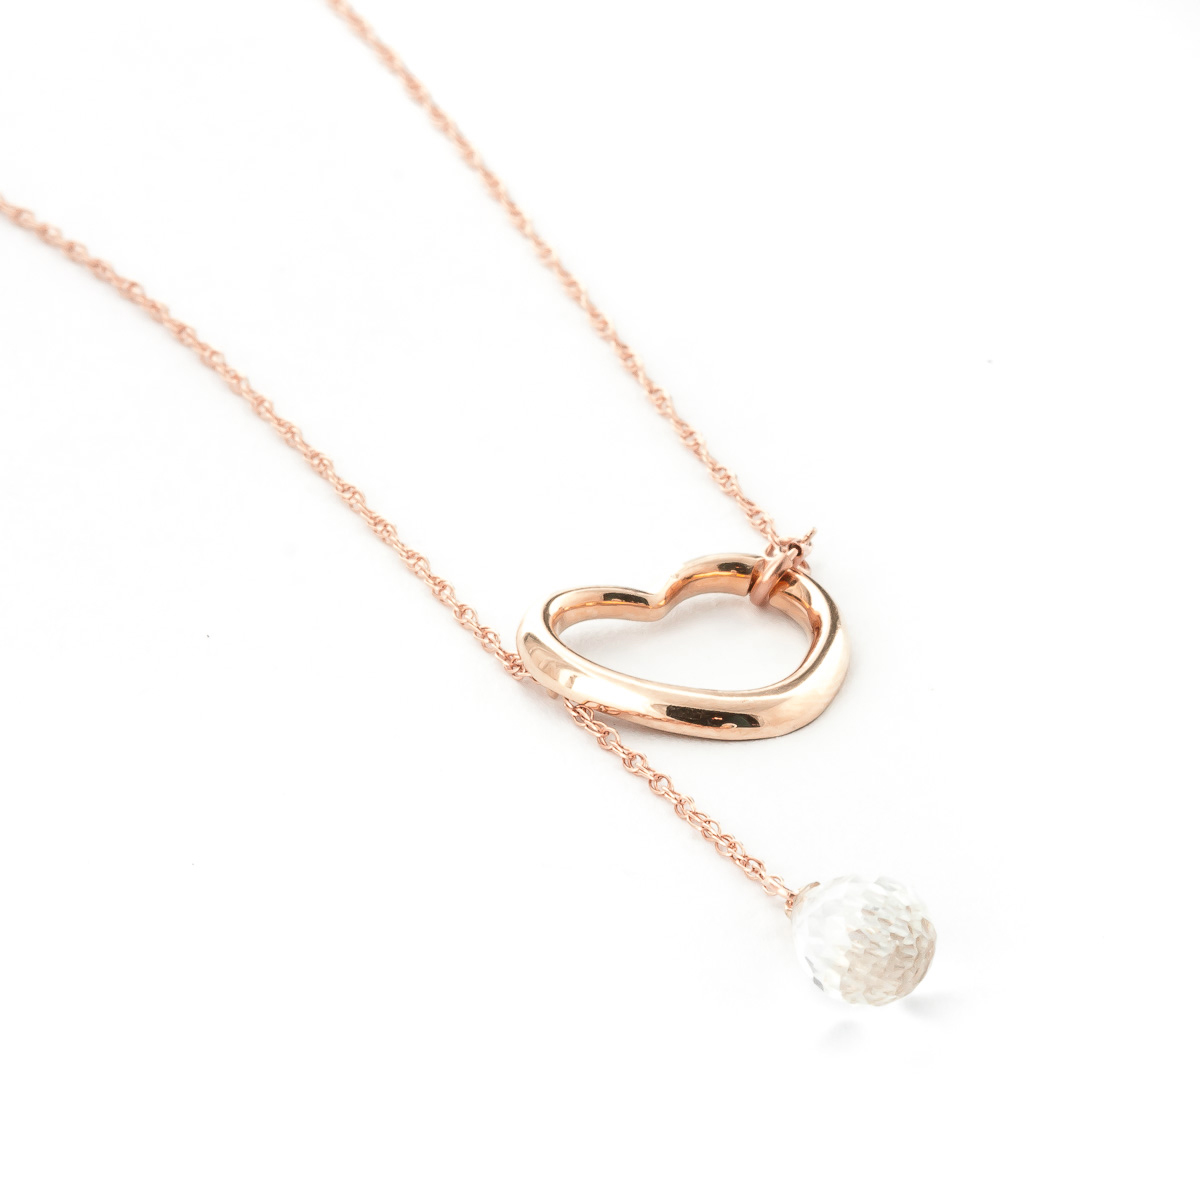 White Topaz Heart Drop Pendant Necklace 2.25 ct in 9ct Rose Gold